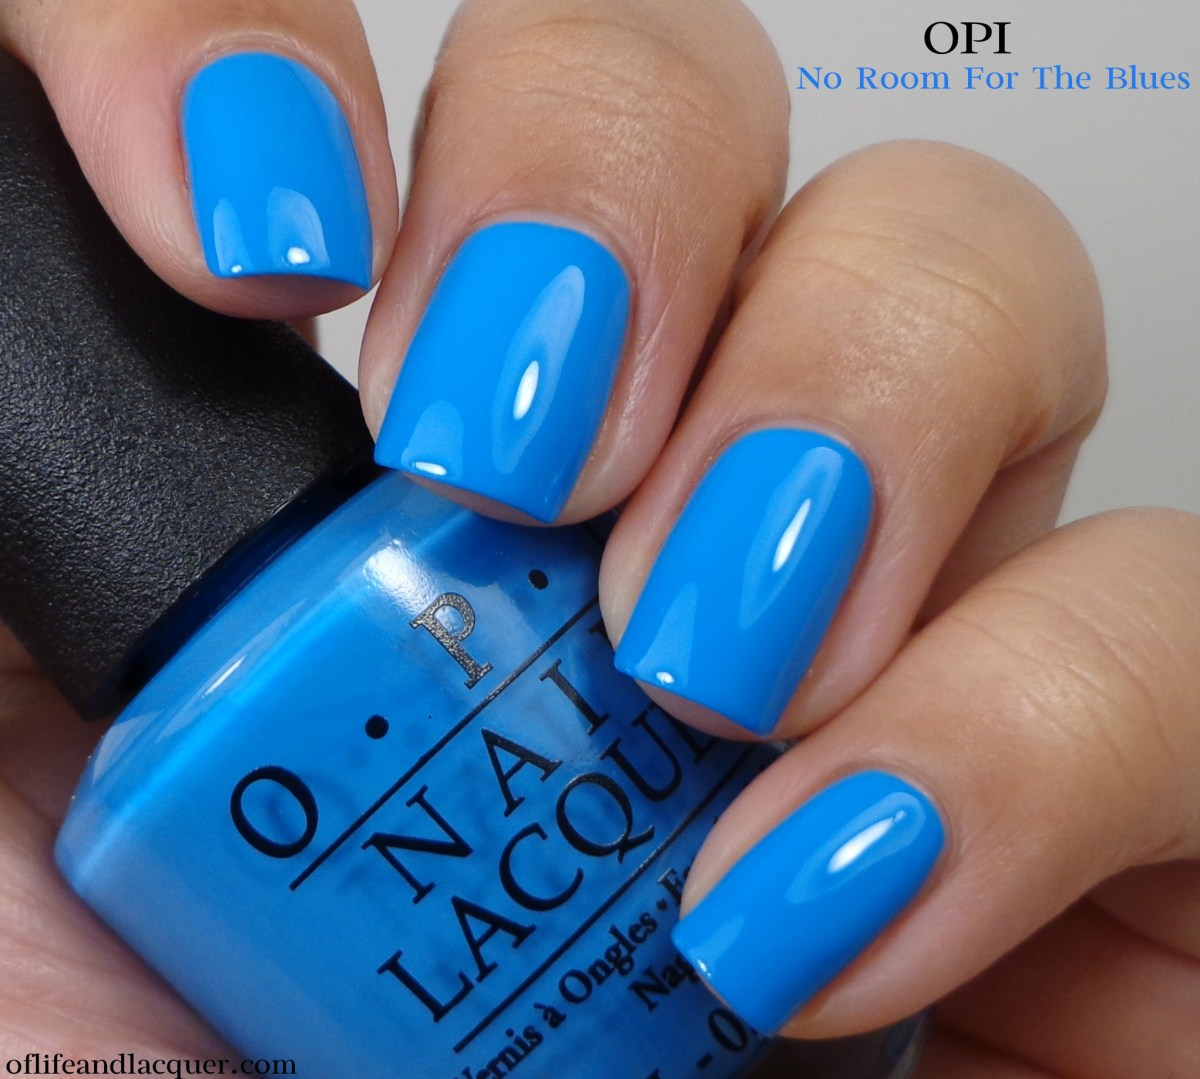 Opi No More Room For The Blues